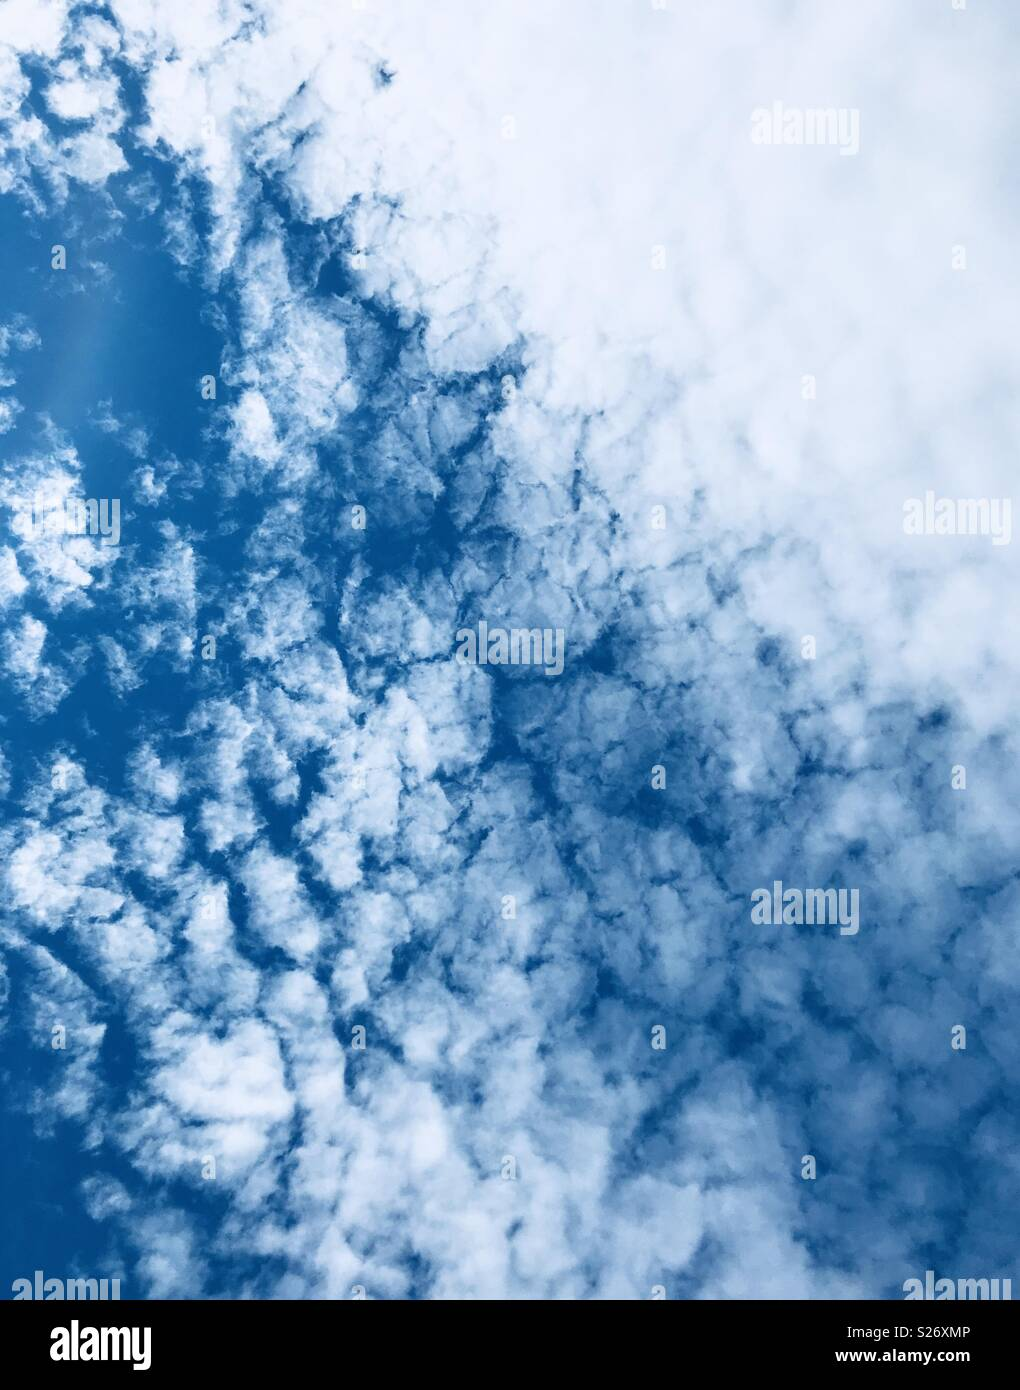 Cool clouds - Stock Image